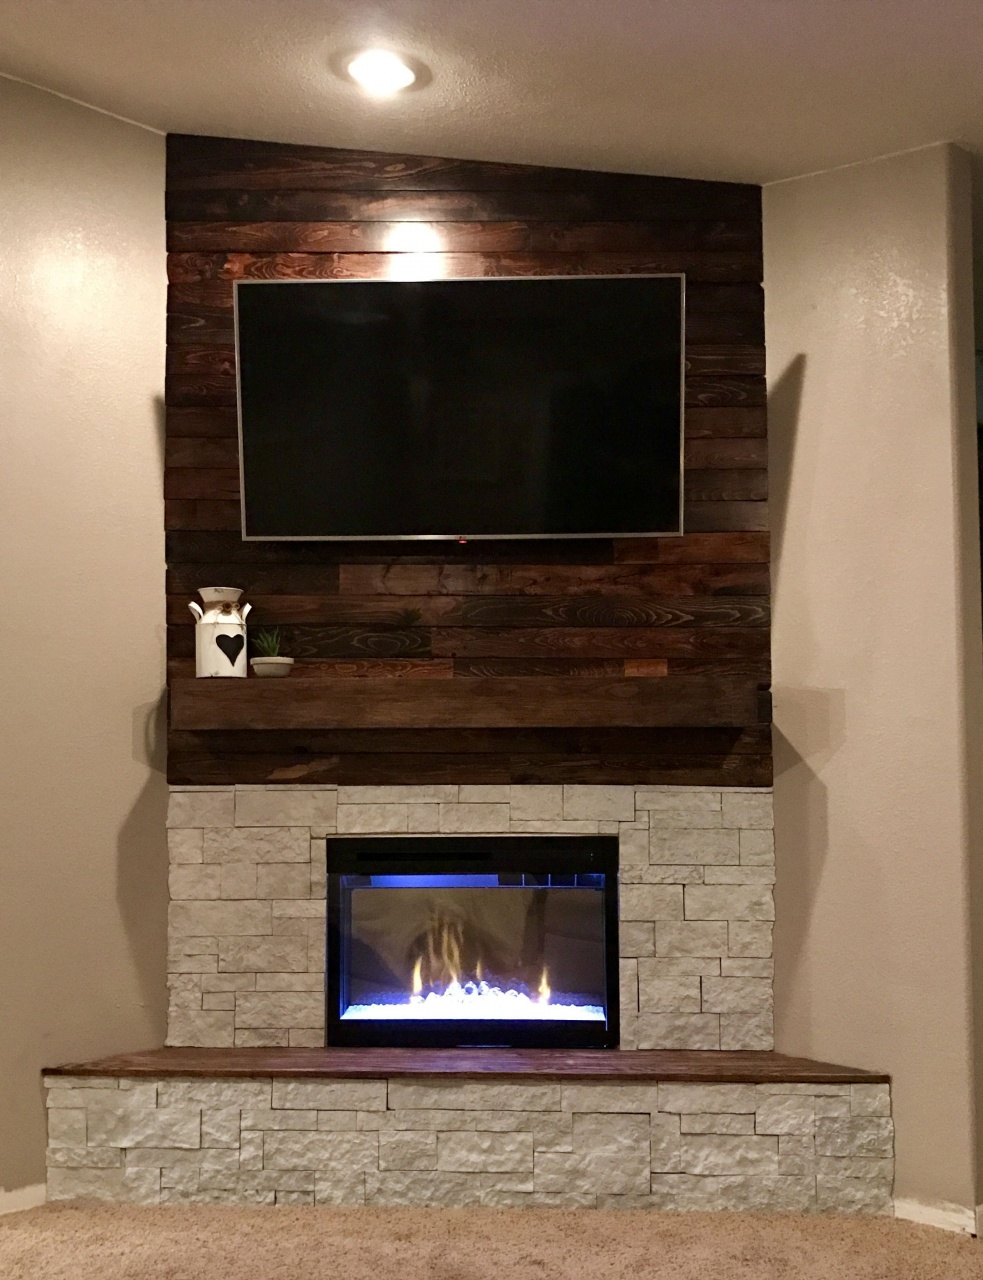 Wall Mounted Natural Gas Fireplace Luxury Wall Mounted Electric Fireplace Reviews – Fireplace Ideas